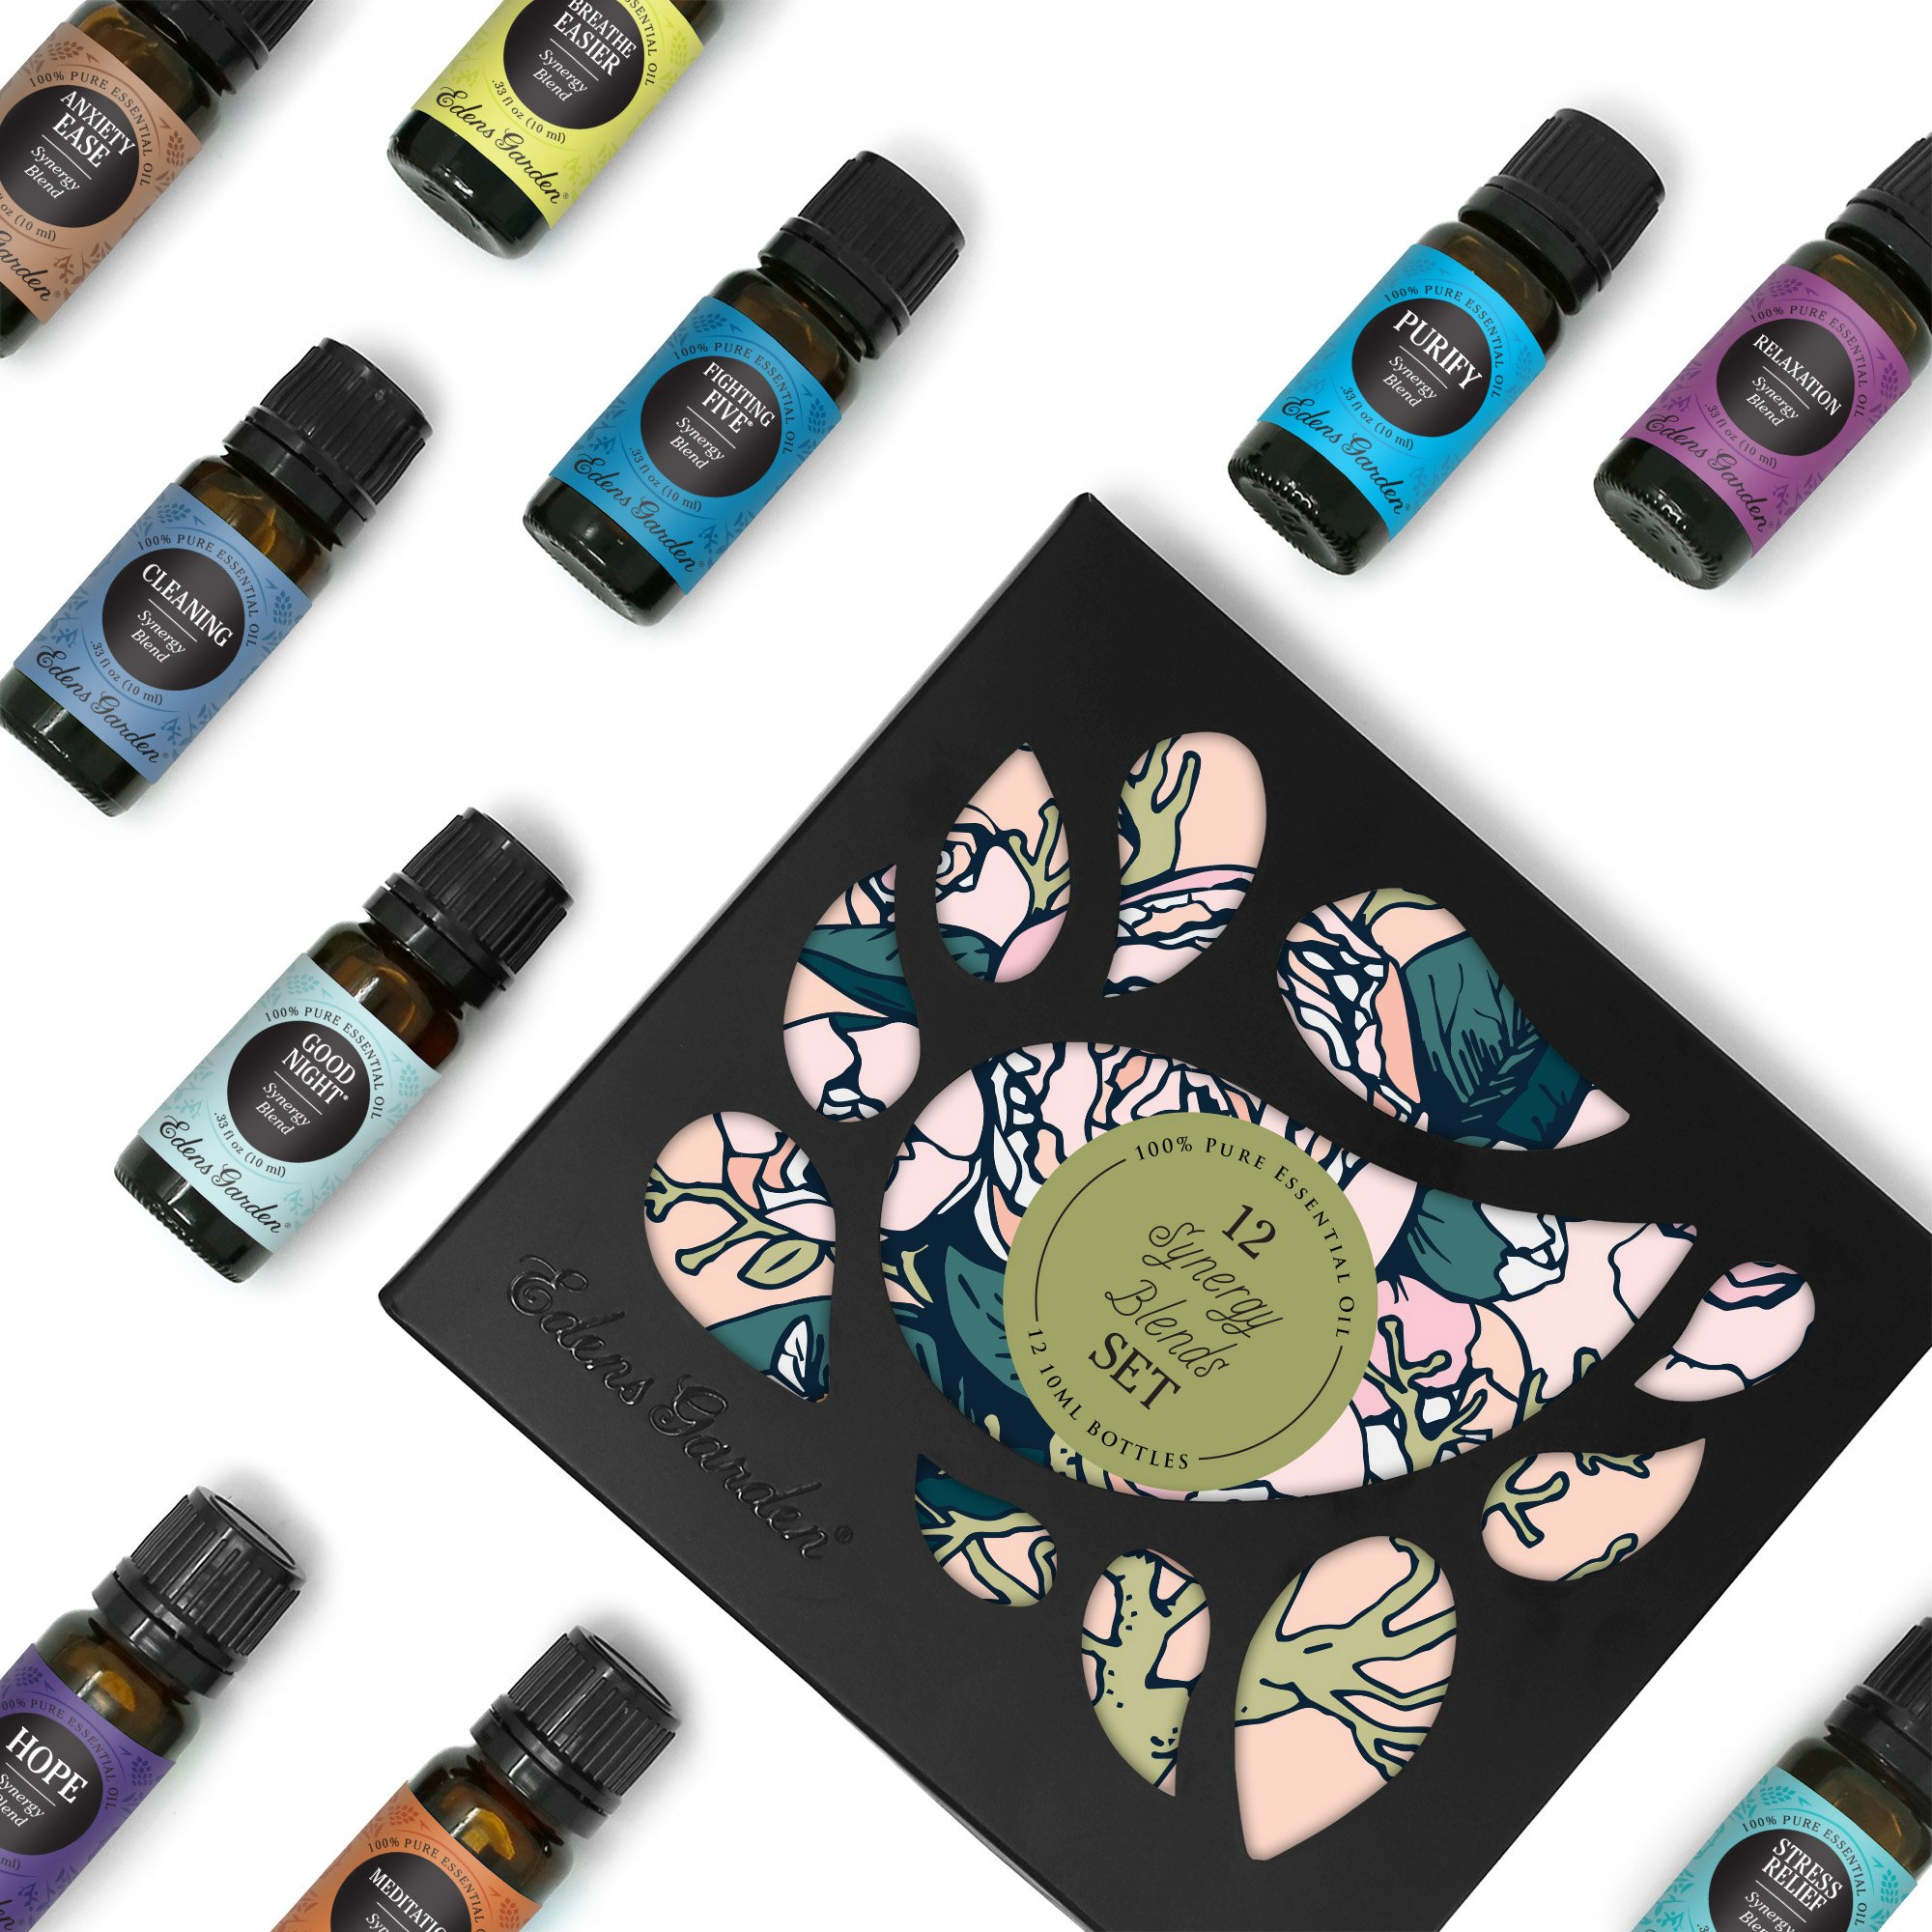 Edens Garden Synergy Blends 12 Set, Best 100% Pure Essential Oil Aromatherapy Starter Kit (for Diffuser & Therapeutic Use), 10 ml by Edens Garden